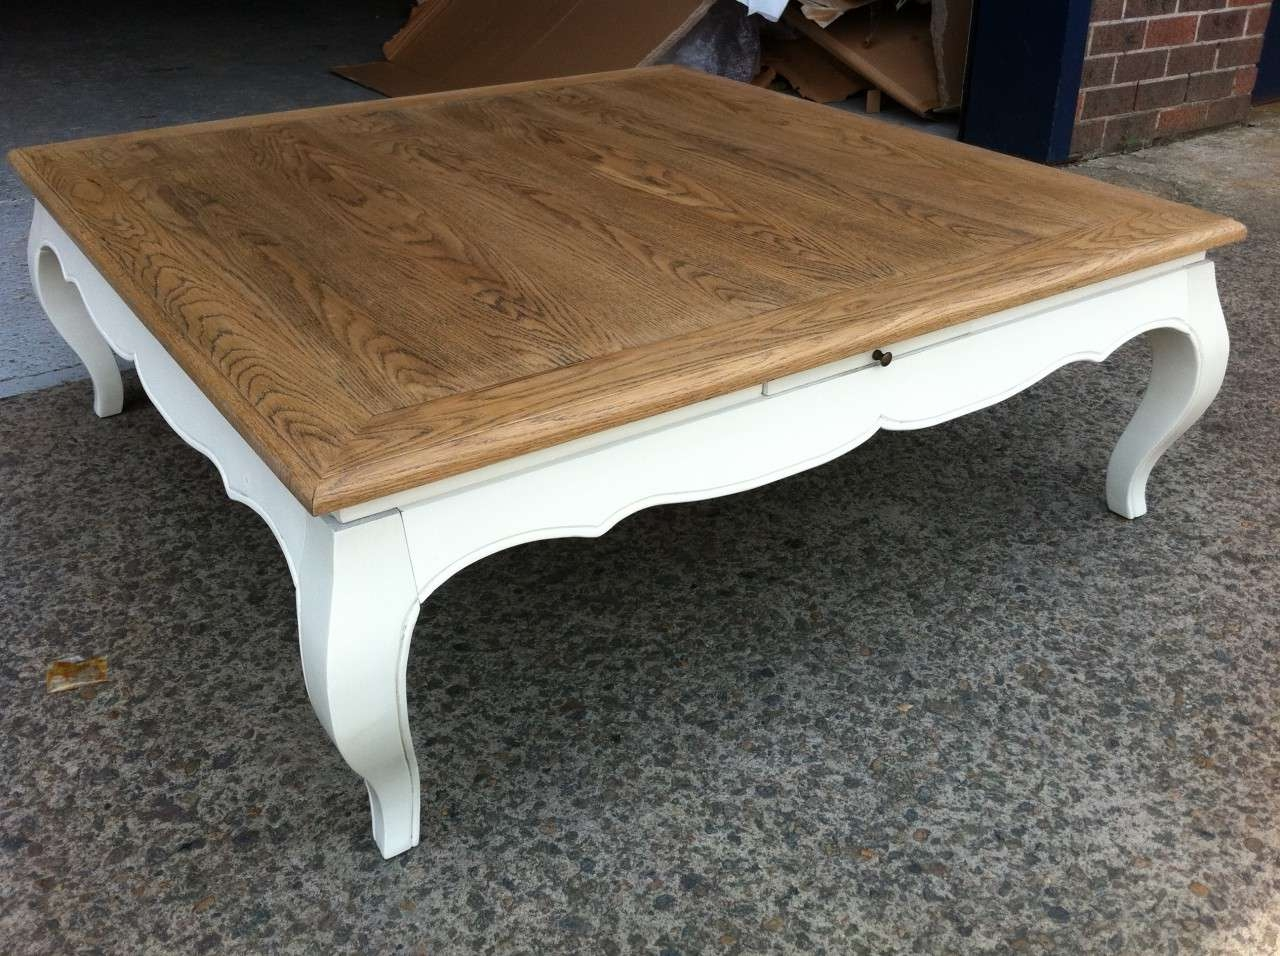 French Provincial Coffee Table – Writehookstudio Regarding Widely Used French Country Coffee Tables (View 4 of 20)